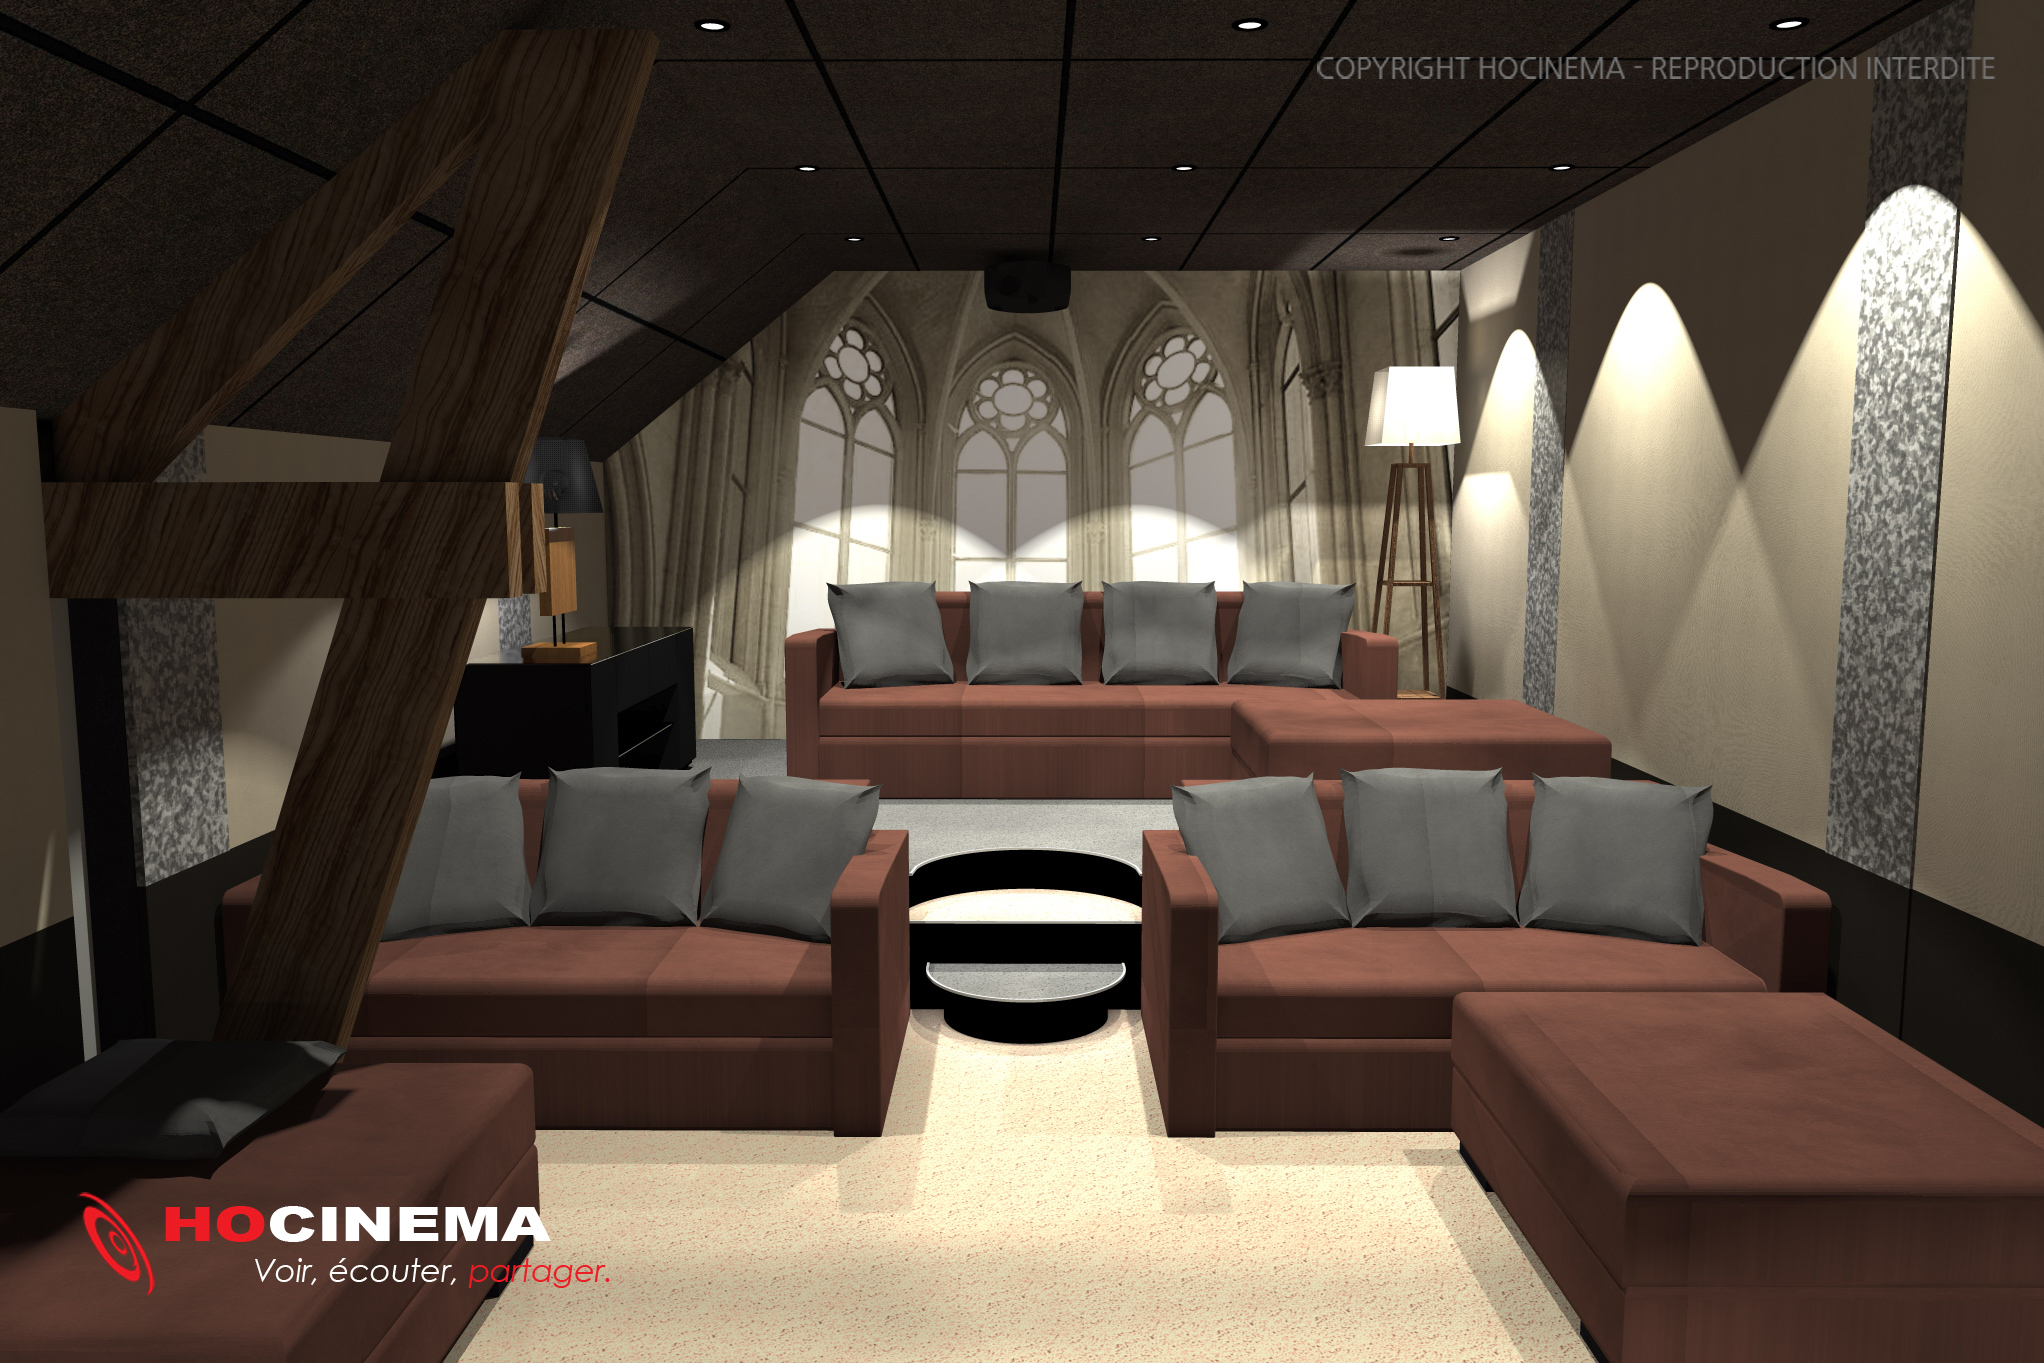 salle cinema maison hocinema la salle de cin ma maison lynx en d tail le concept 07d une salle. Black Bedroom Furniture Sets. Home Design Ideas